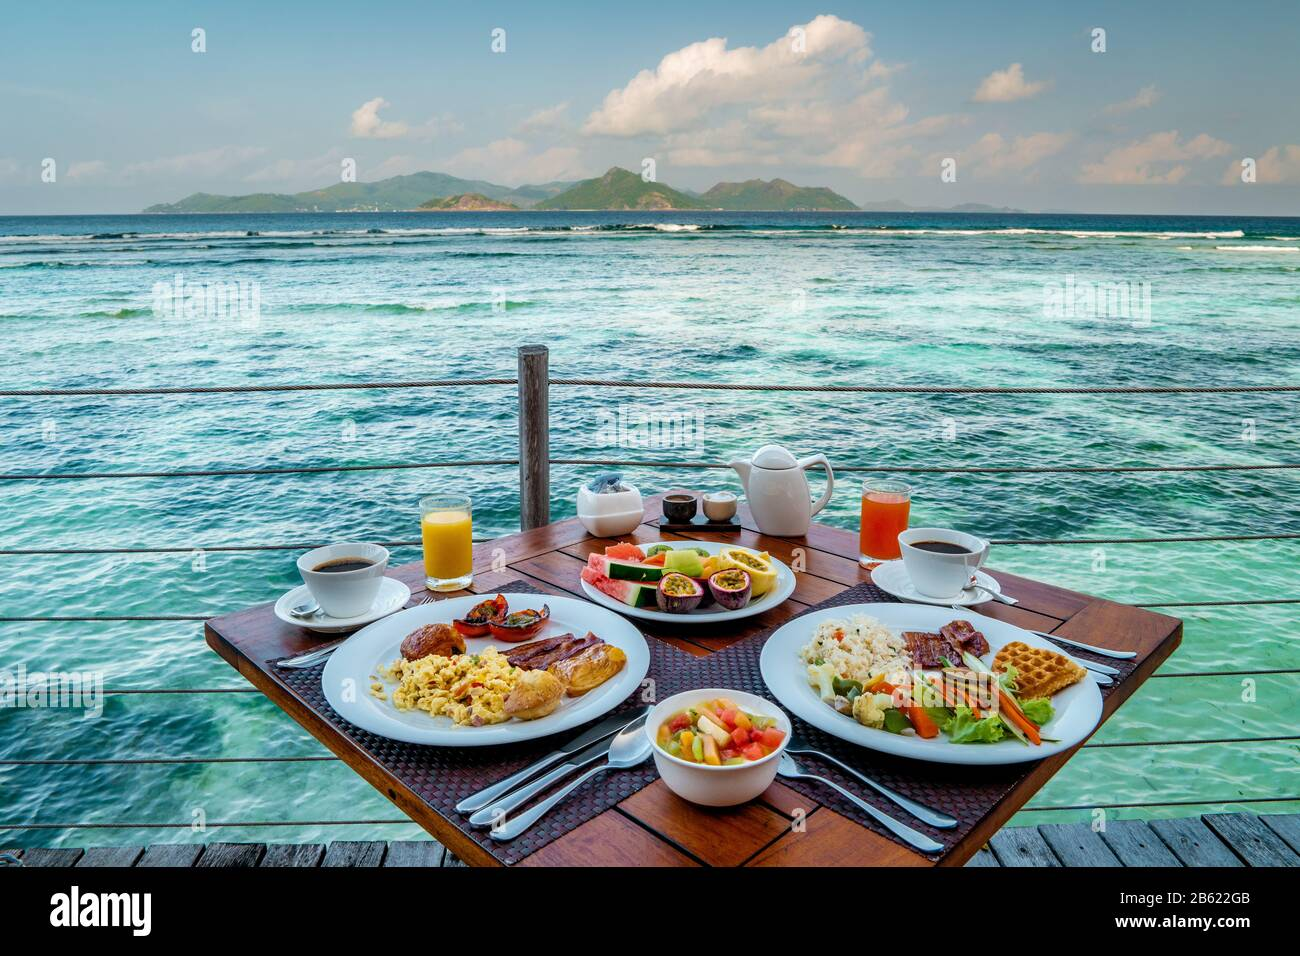 Breakfast On The Beach High Resolution Stock Photography and Images - Alamy